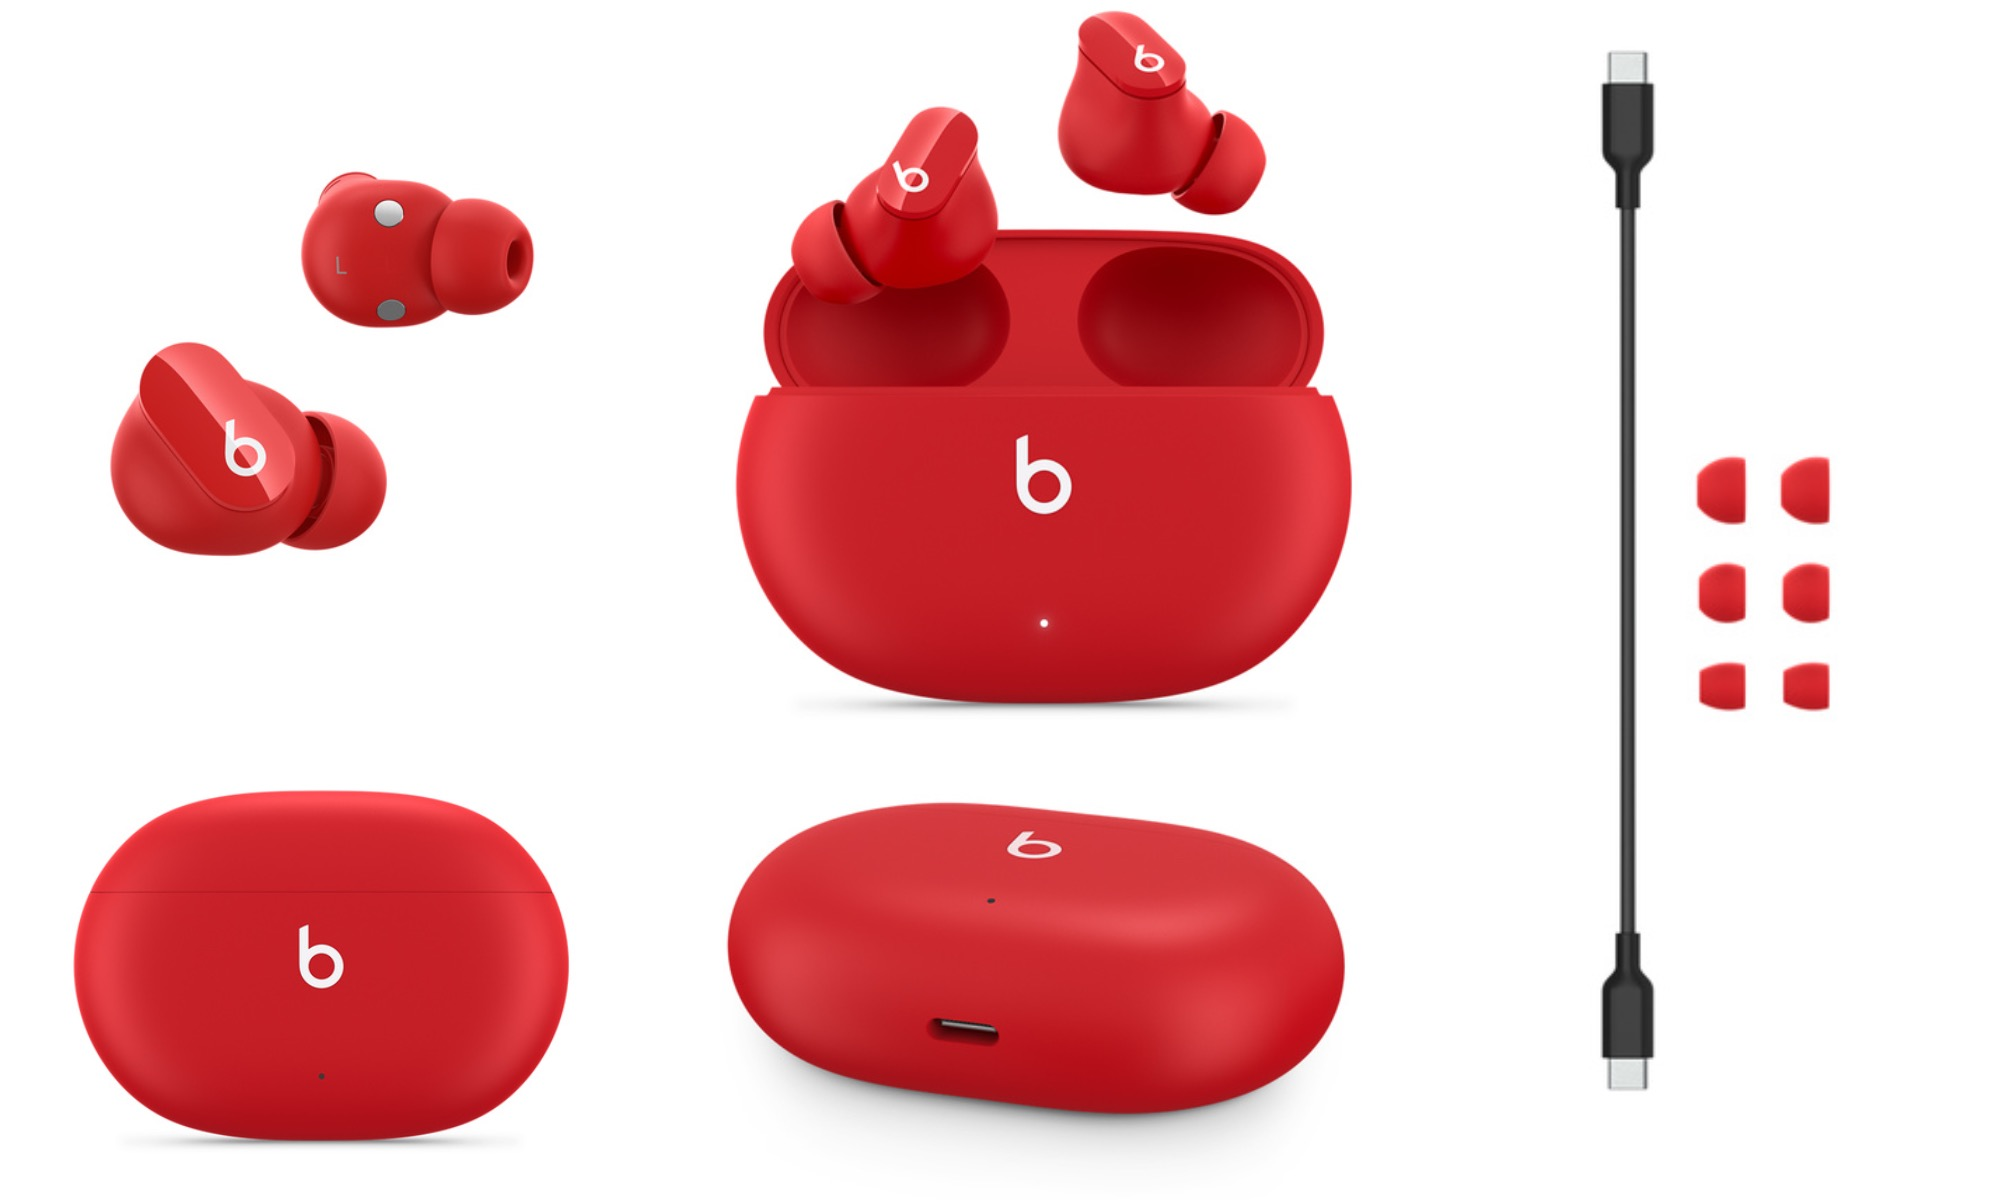 Beats Studio Buds Angles and Accessories